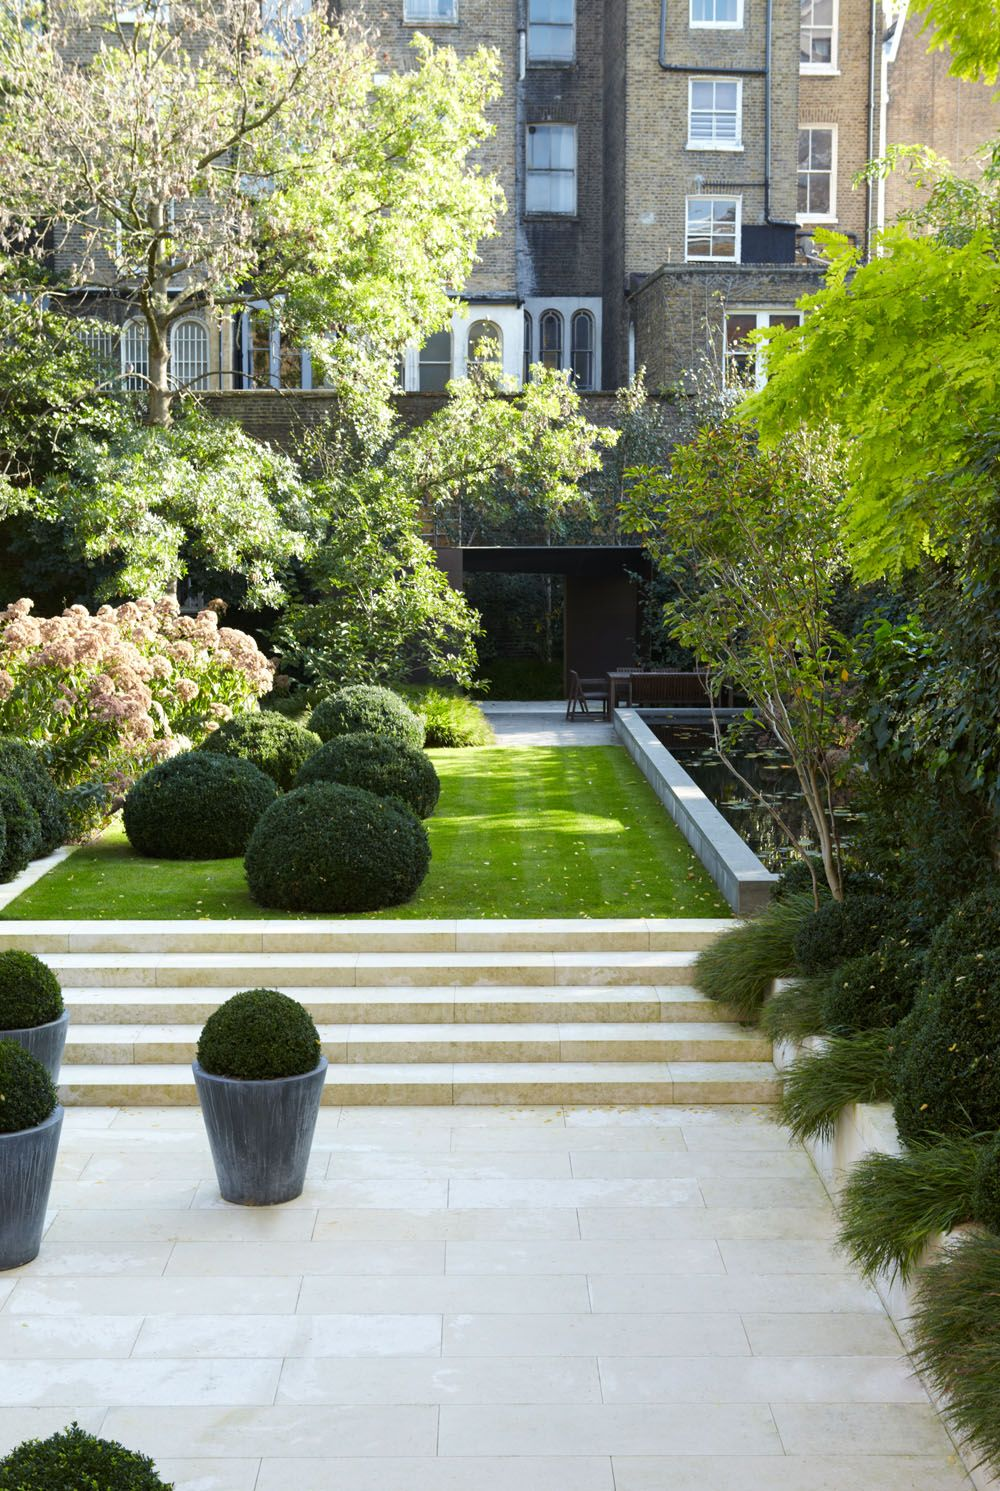 Elegance And Masculinity Embedded In Admirable Townhouse Design Townhouse Garden Beautiful Gardens Garden Design